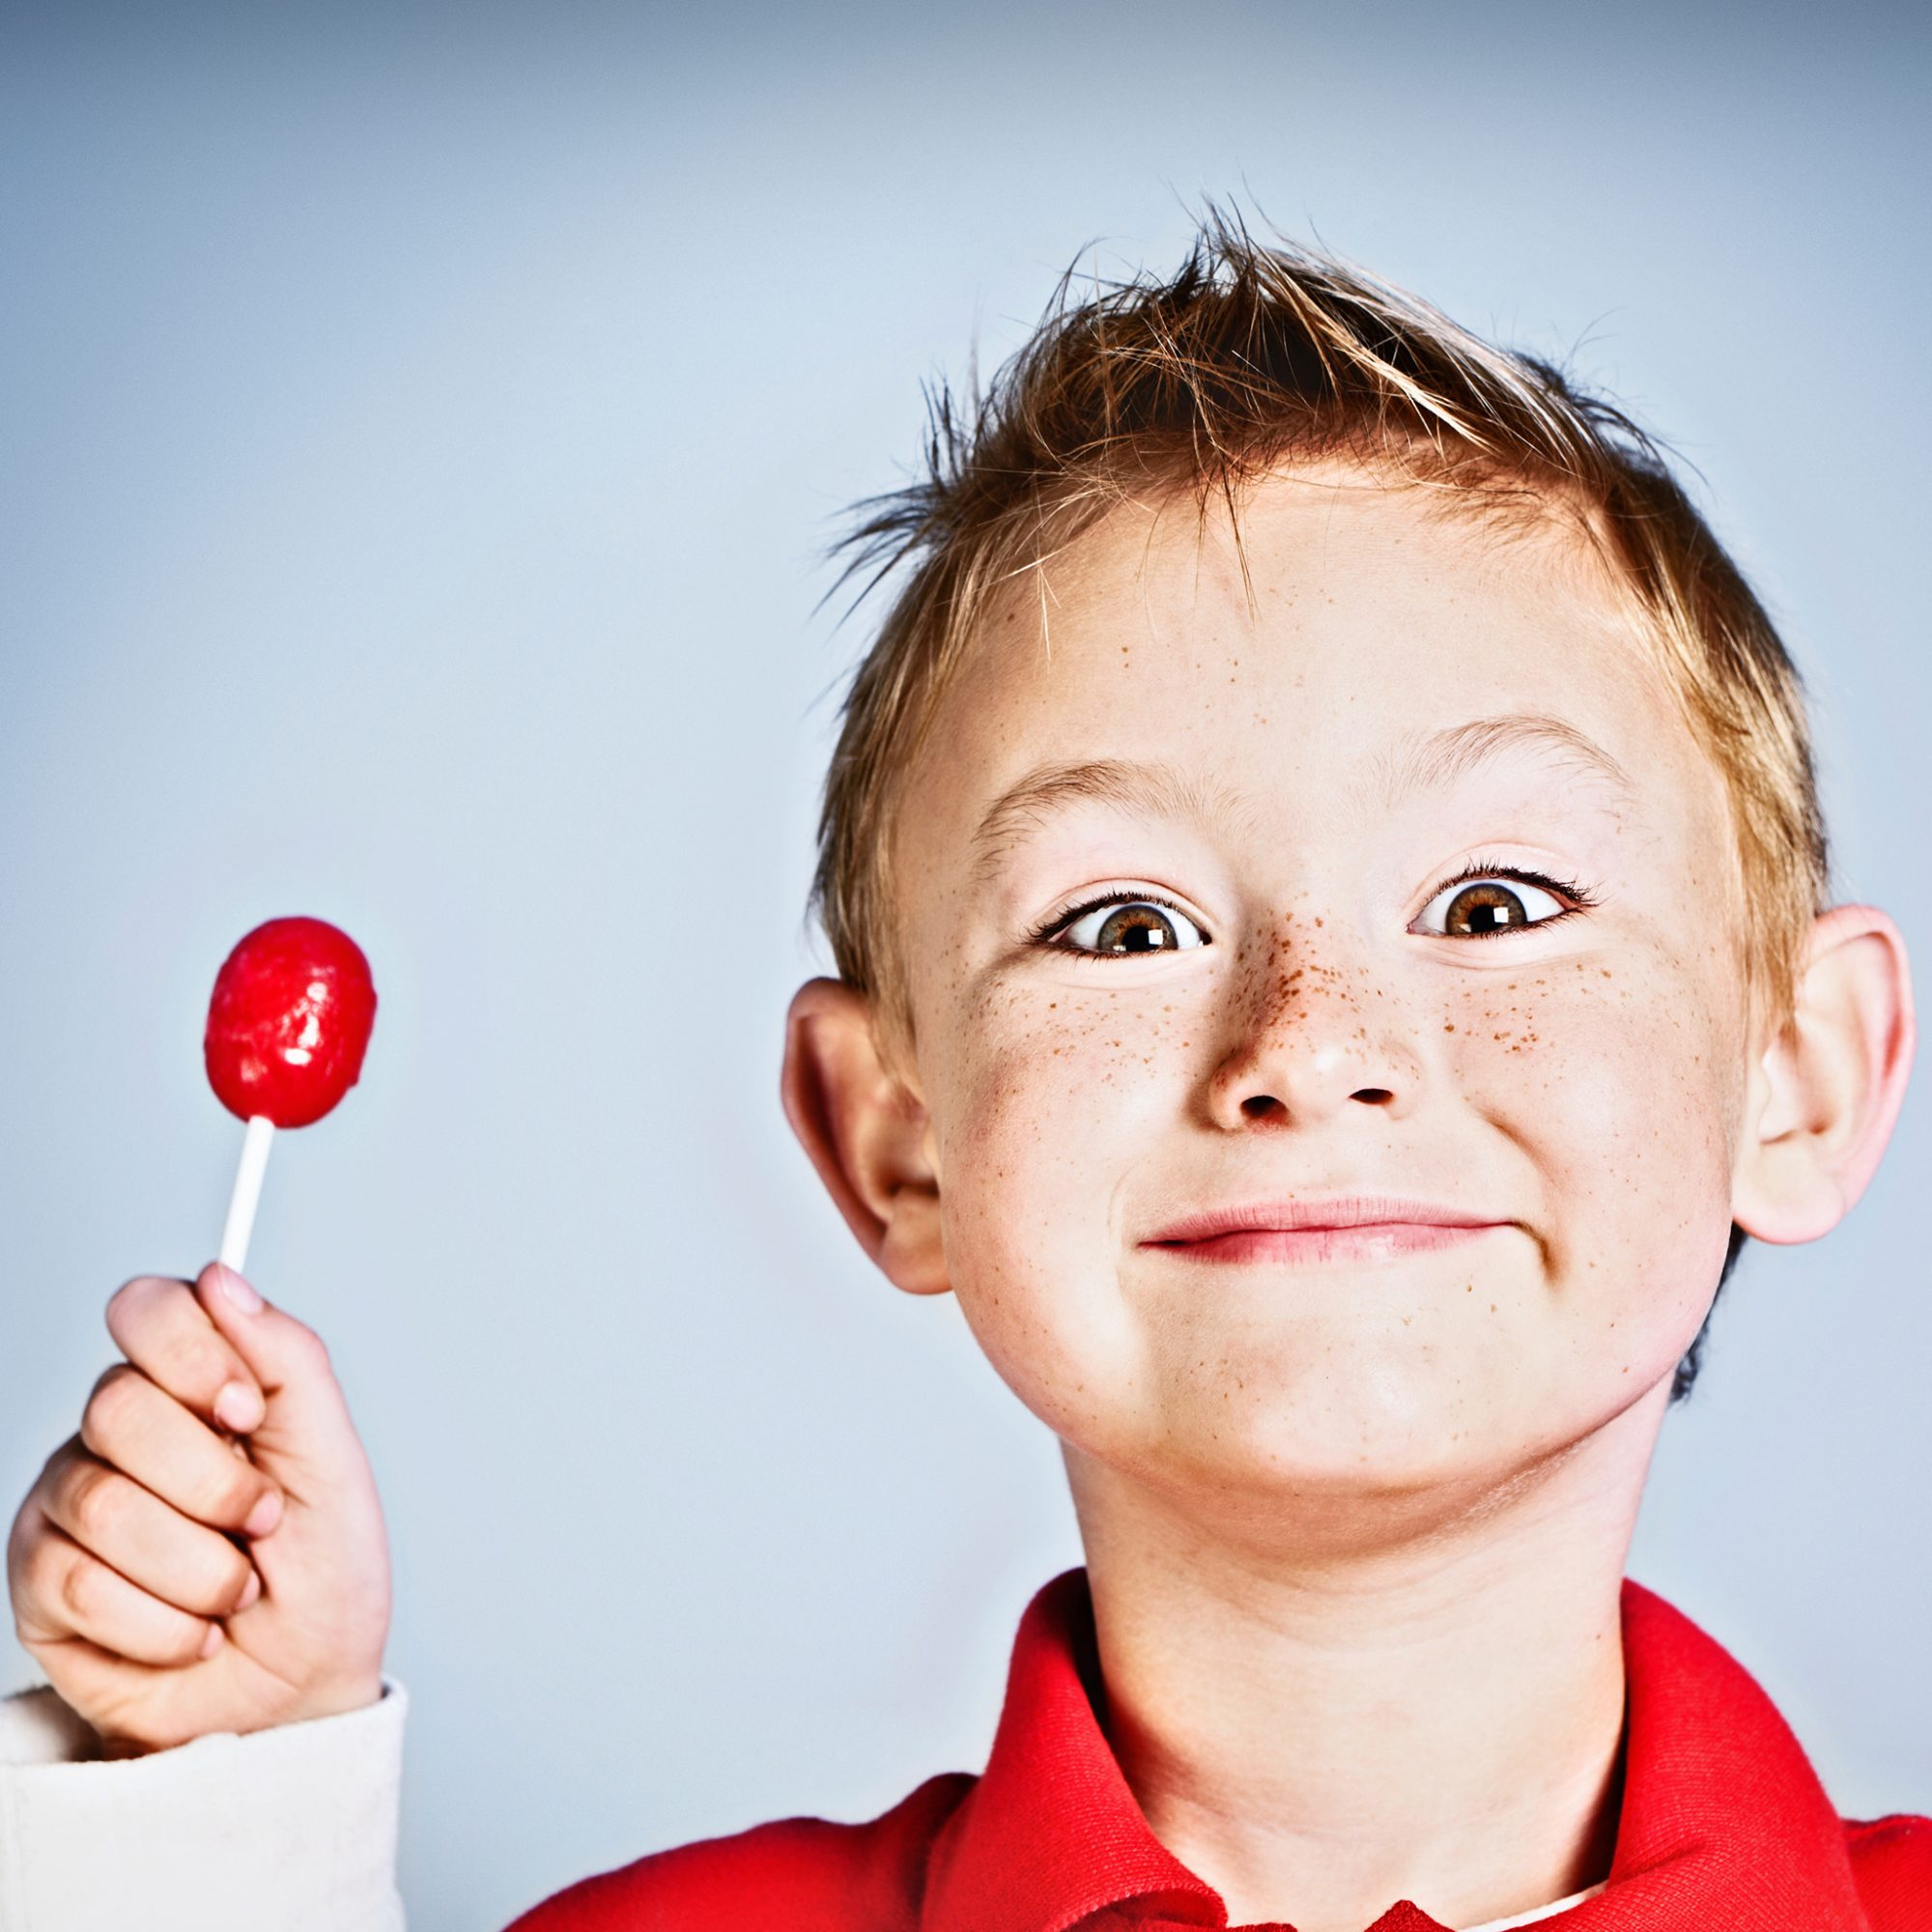 FWX CANDY TO FIGHT CAVITIES